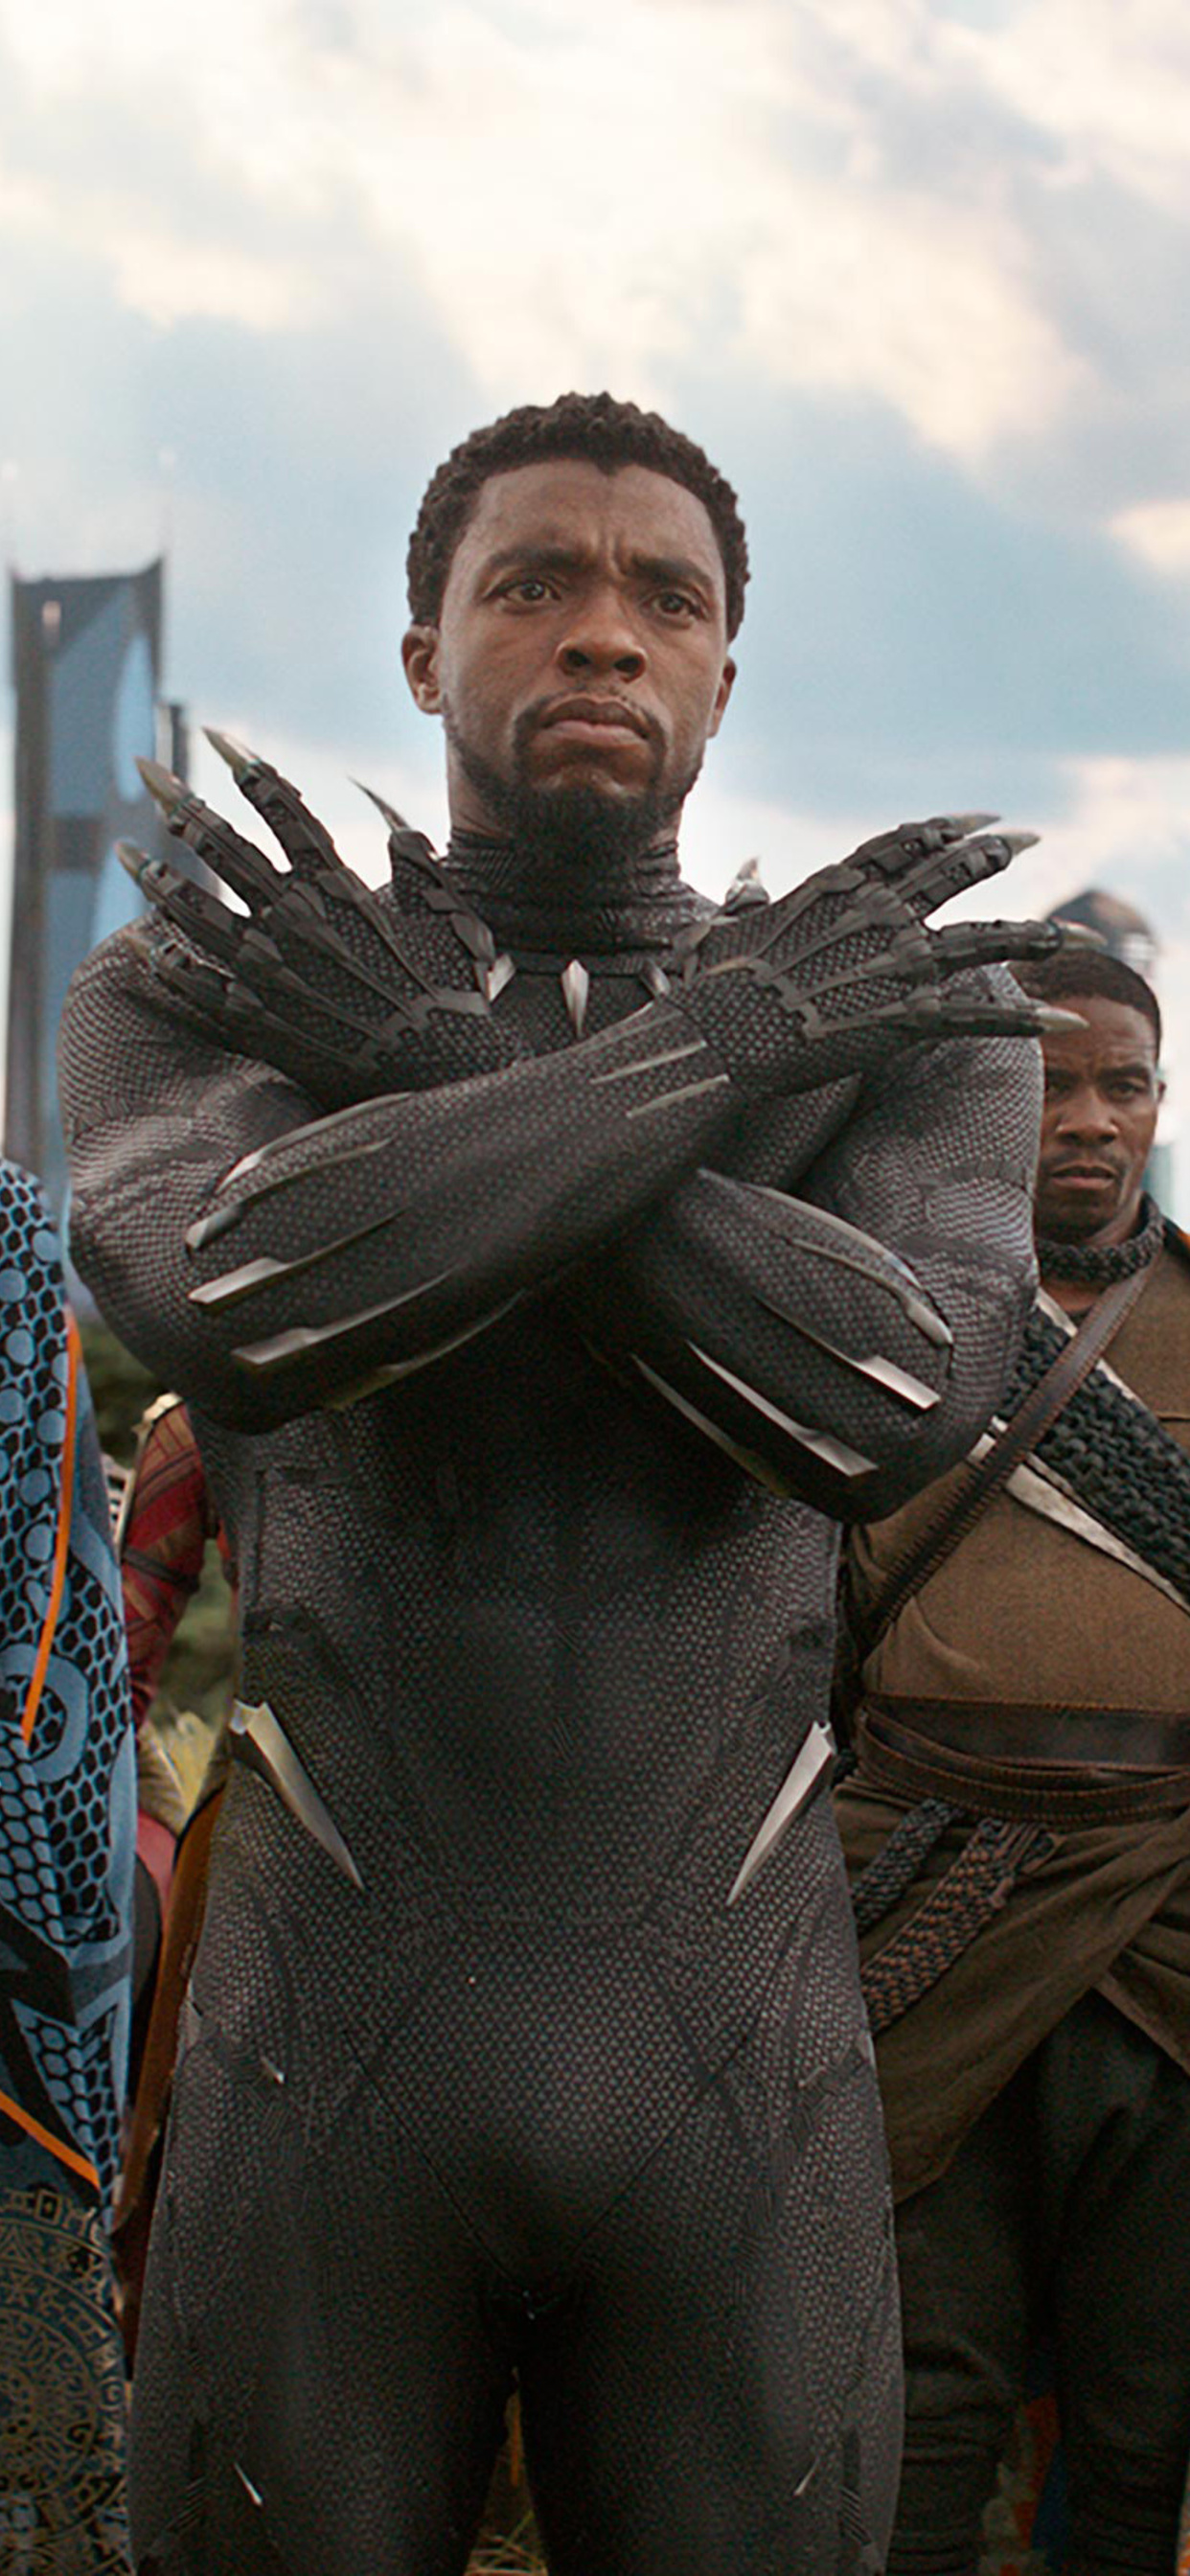 1242x2688 Black Panther In Avengers Infinity War 2018 Iphone Xs Max Hd 4k Wallpapers Images Backgrounds Photos And Pictures